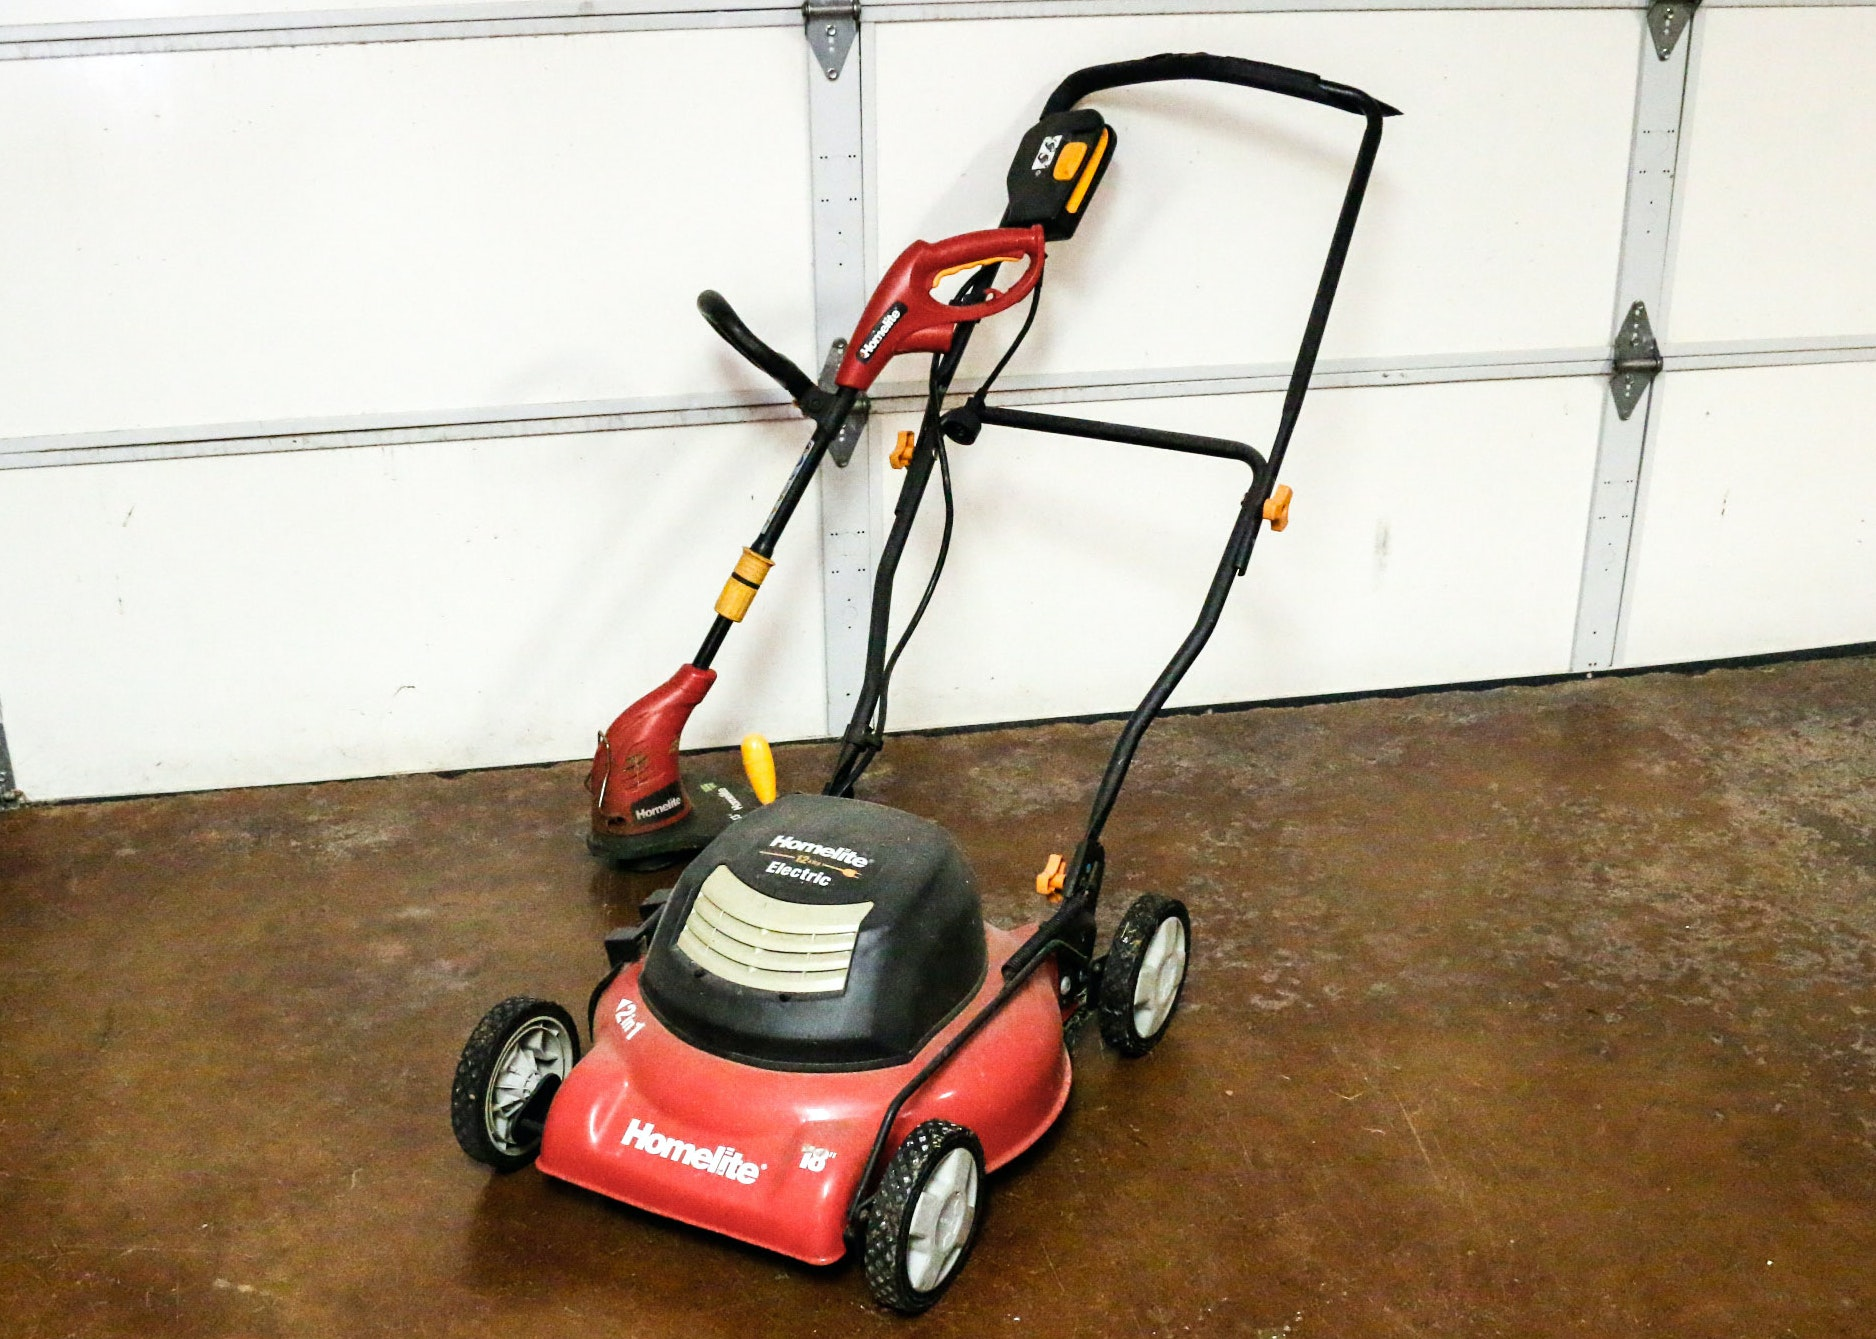 homelite lawn mower and weed eater ebth rh ebth com homelite lawn mower manual homelite lawn mower spares uk